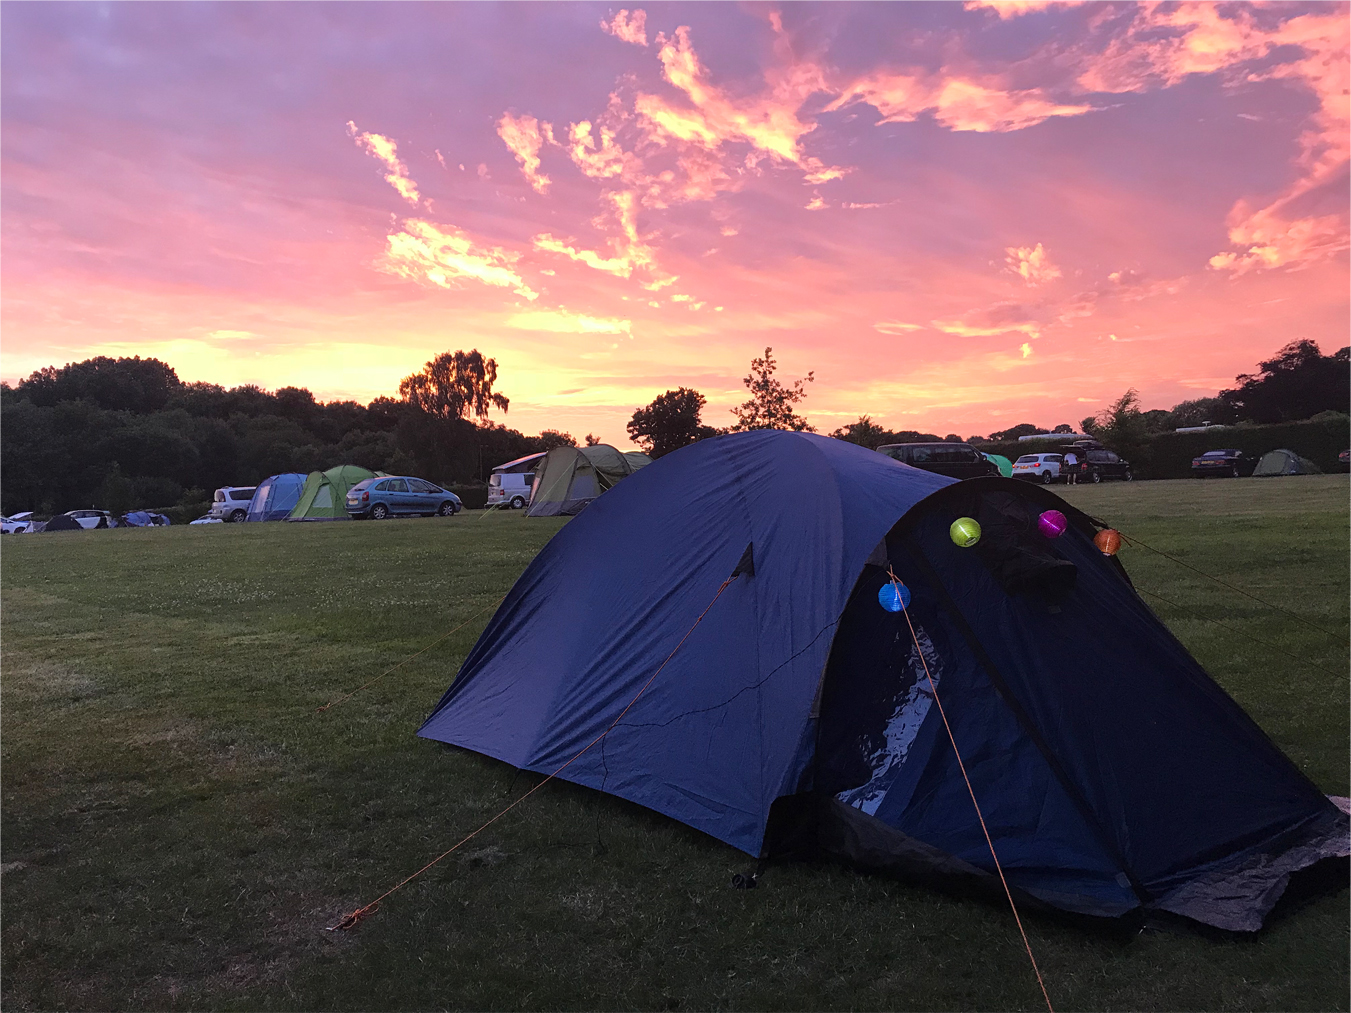 Bournemouth Sunset Tent, Beginners guide to camping, tent pitch